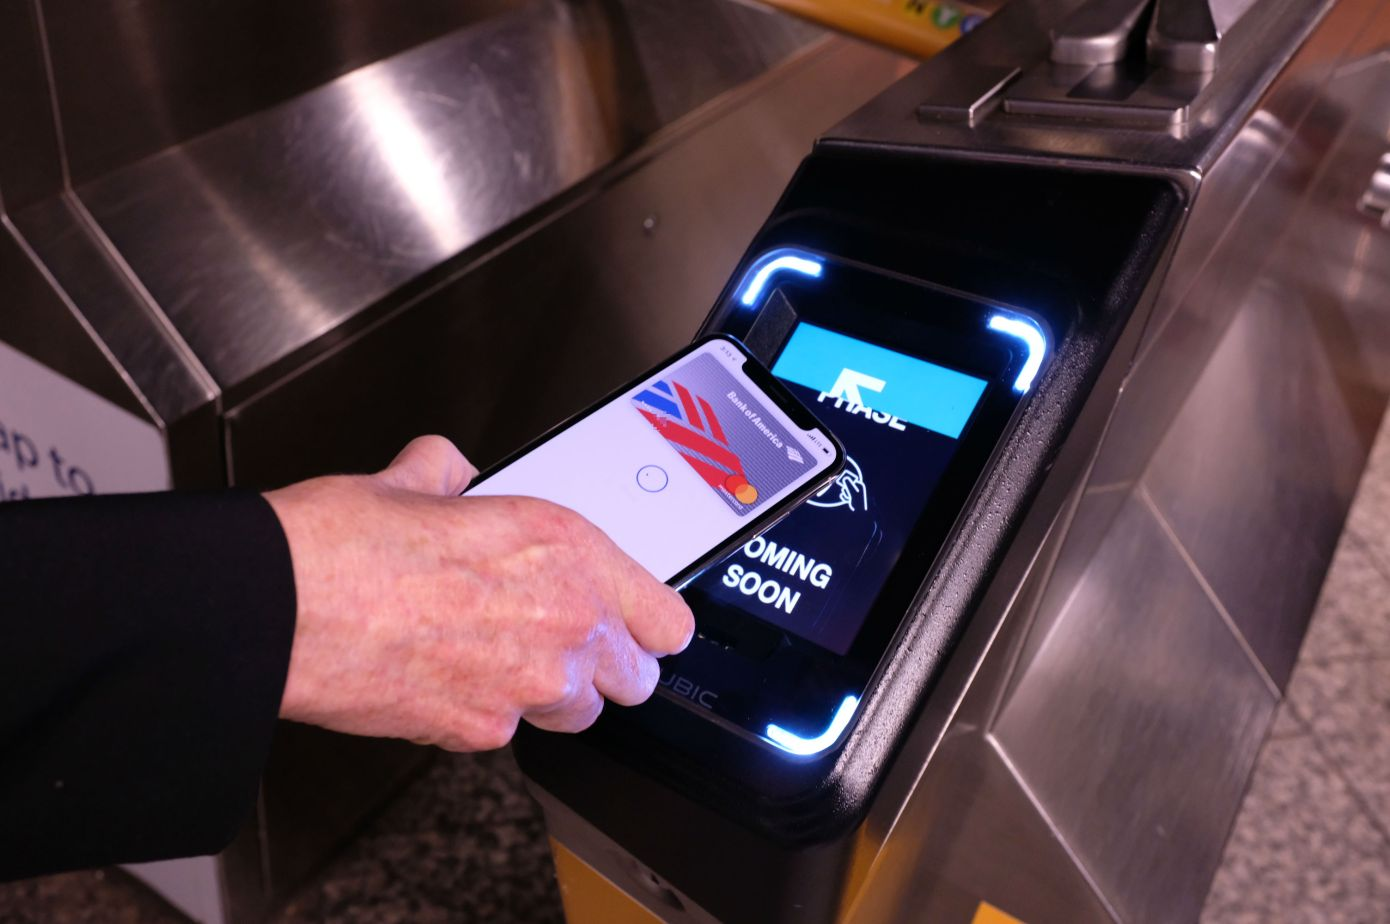 Apple Pay Express Transit Coming to London 'in the Coming